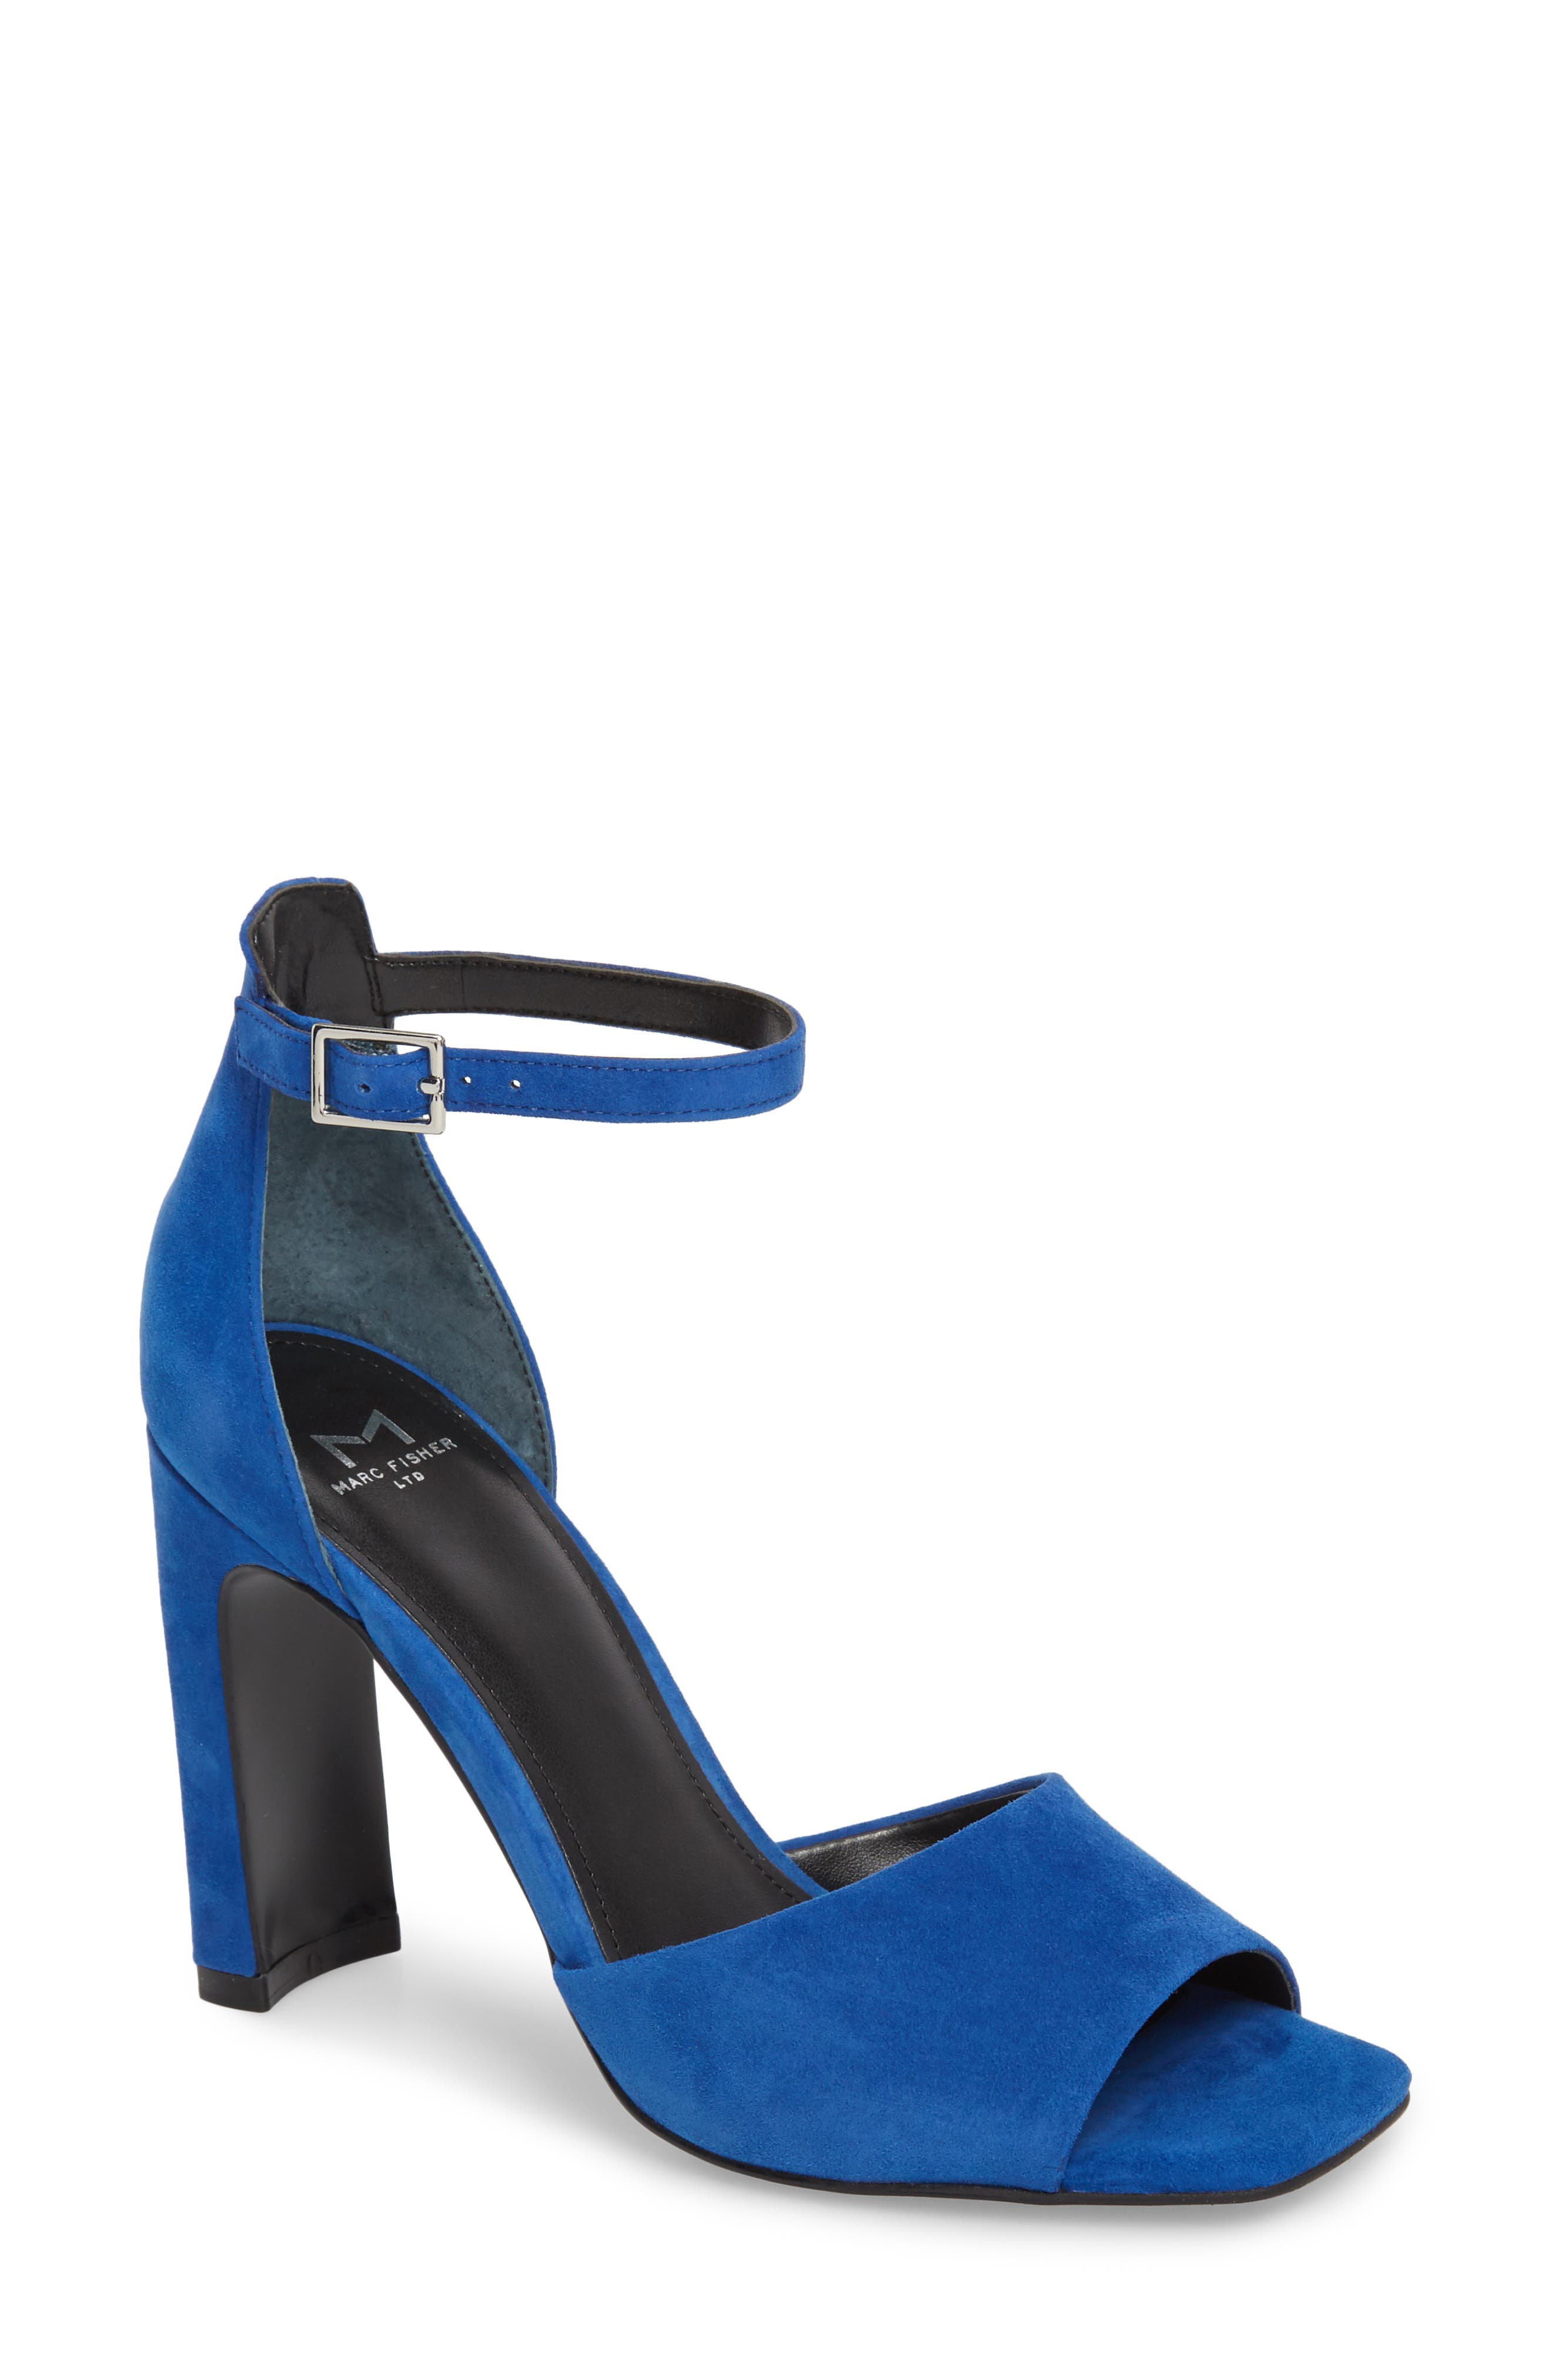 Harlin Ankle Strap Sandal,                             Main thumbnail 1, color,                             BLUE SUEDE